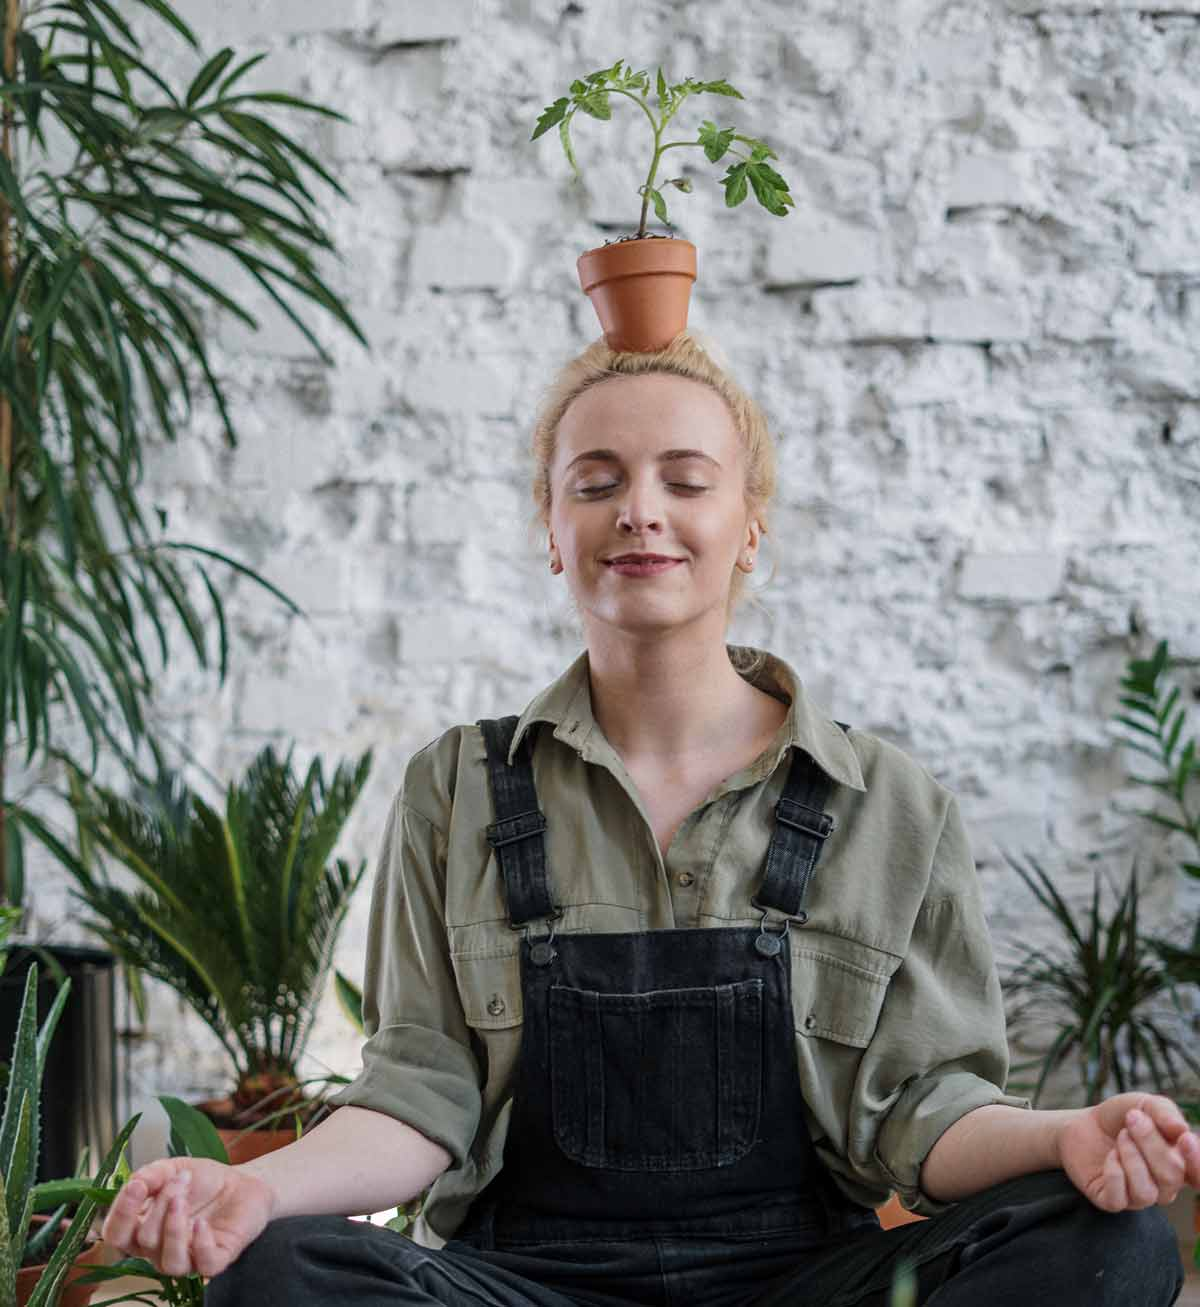 Picture of lady with plant pot on head meditating